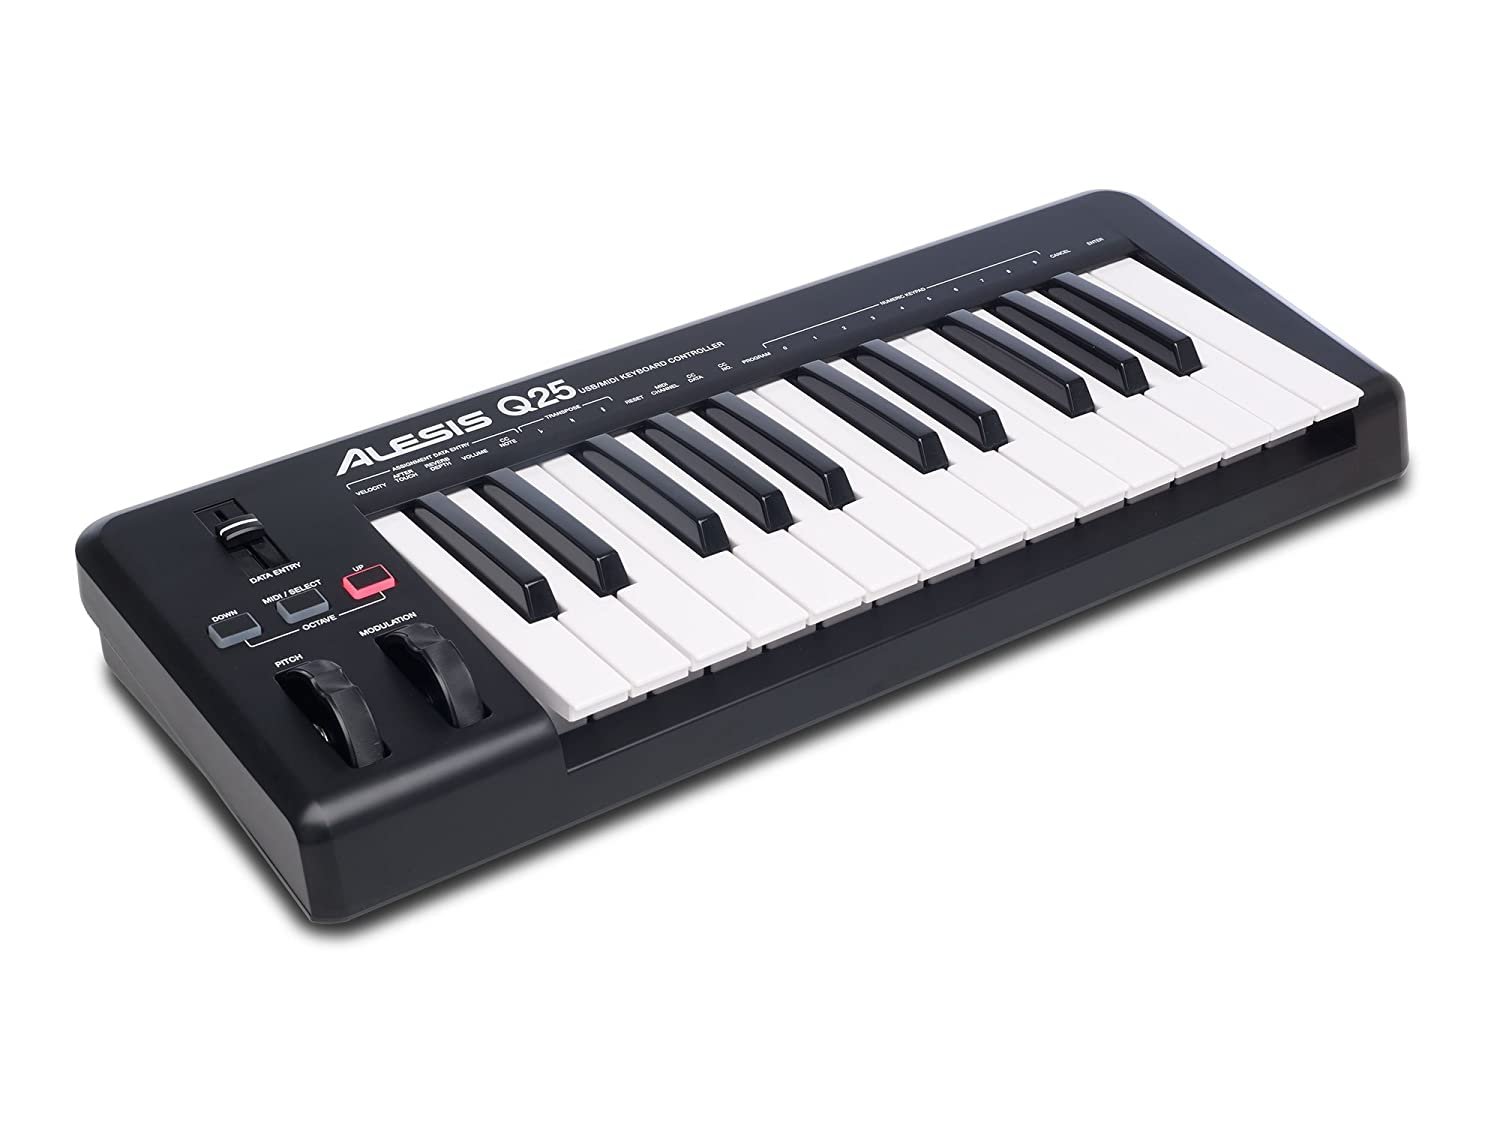 Alesis Q25, Controller MIDI with 25 Velocity Sentitive Keys, Pitch & Modulation Wheels and Controls + Ableton Live Lite Included inMusic Europe Limited